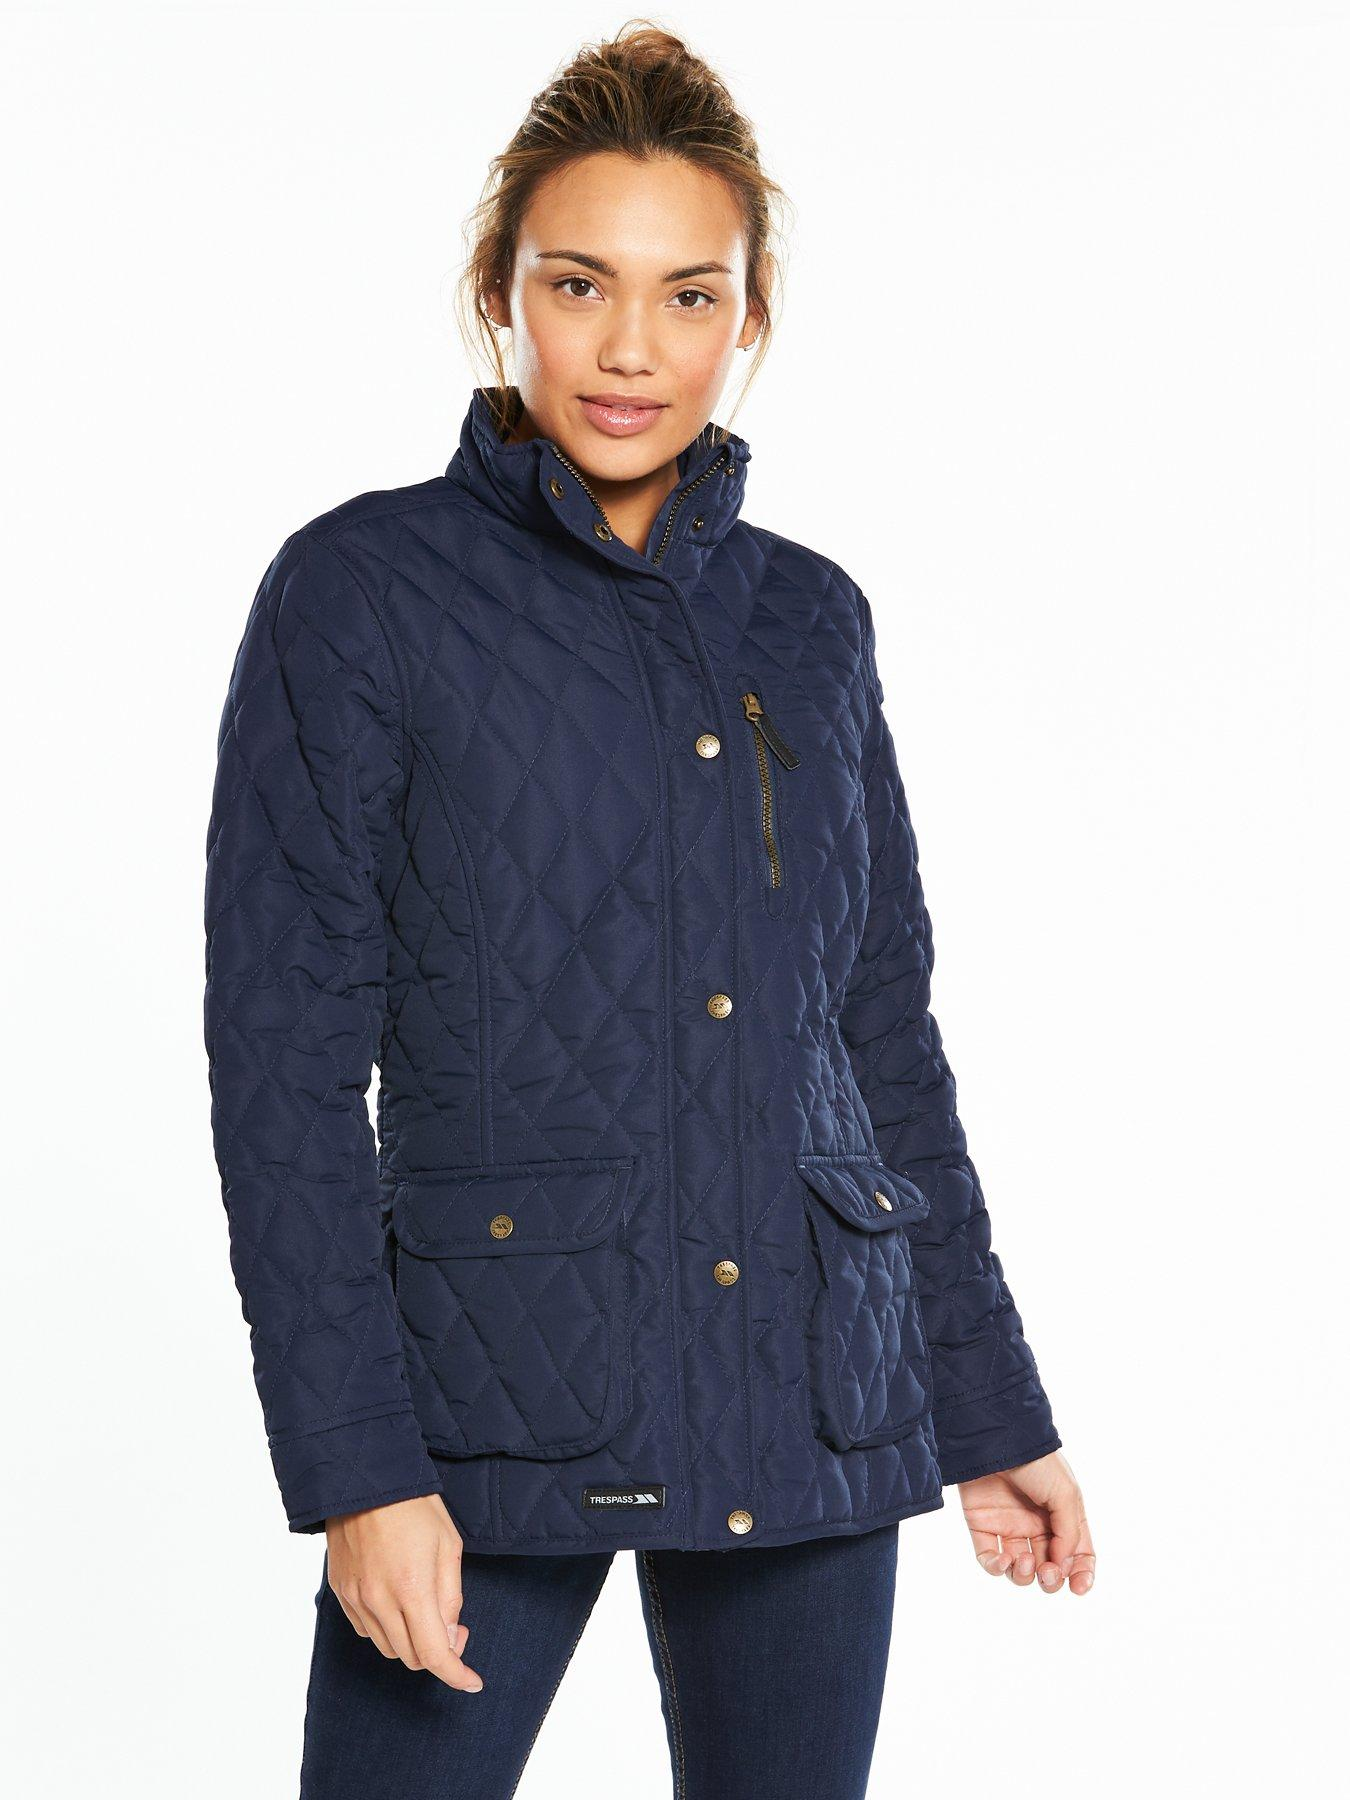 Trespass Bronwyn Quilted Jacket - Navy